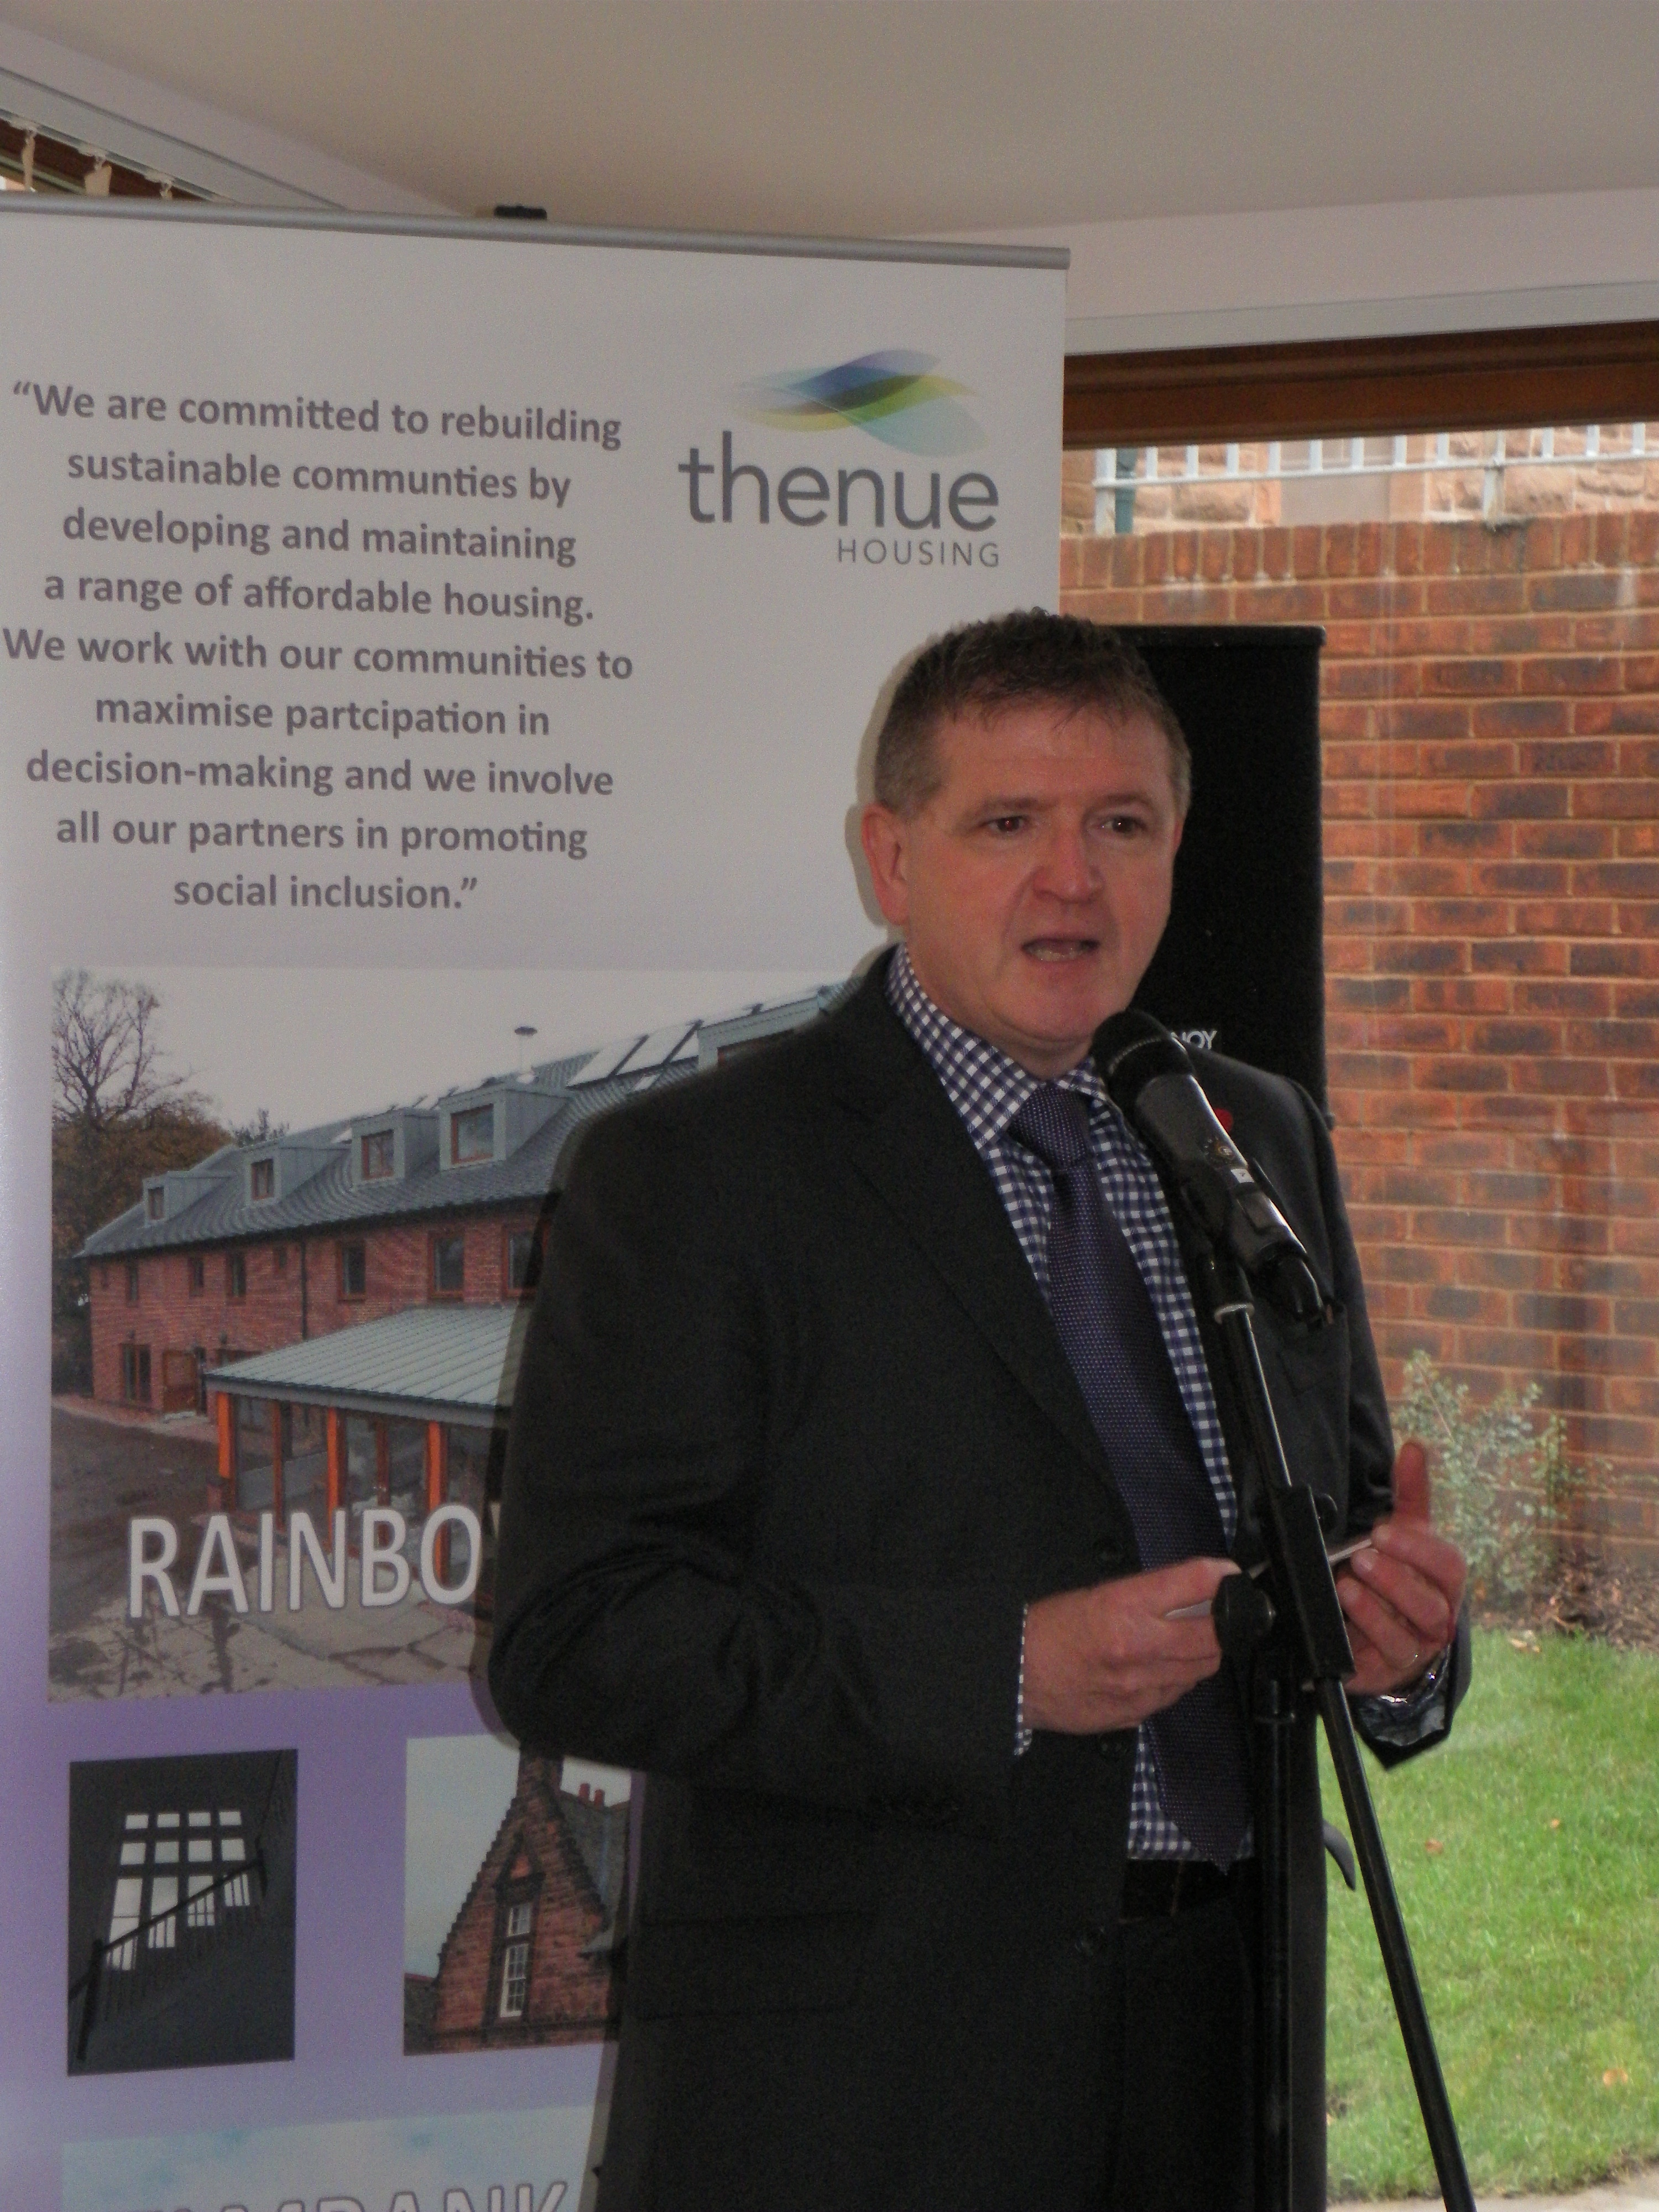 - Charles Turner, Thenue Housing Chief Executive